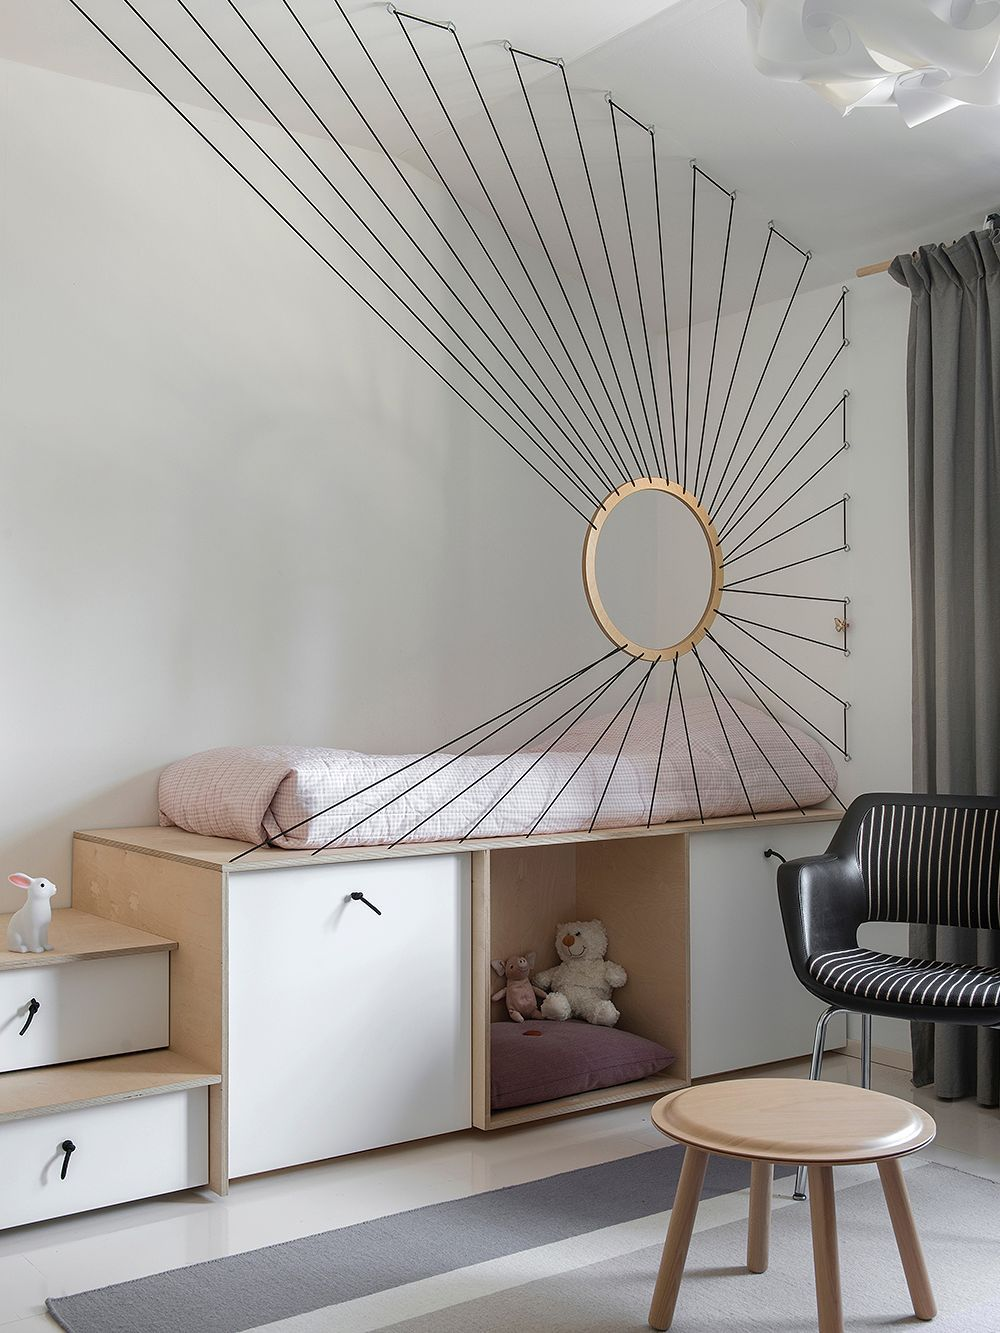 Design Hochbett Miia And Willem S Home Is One Of A Kind Hochbett Kids Room